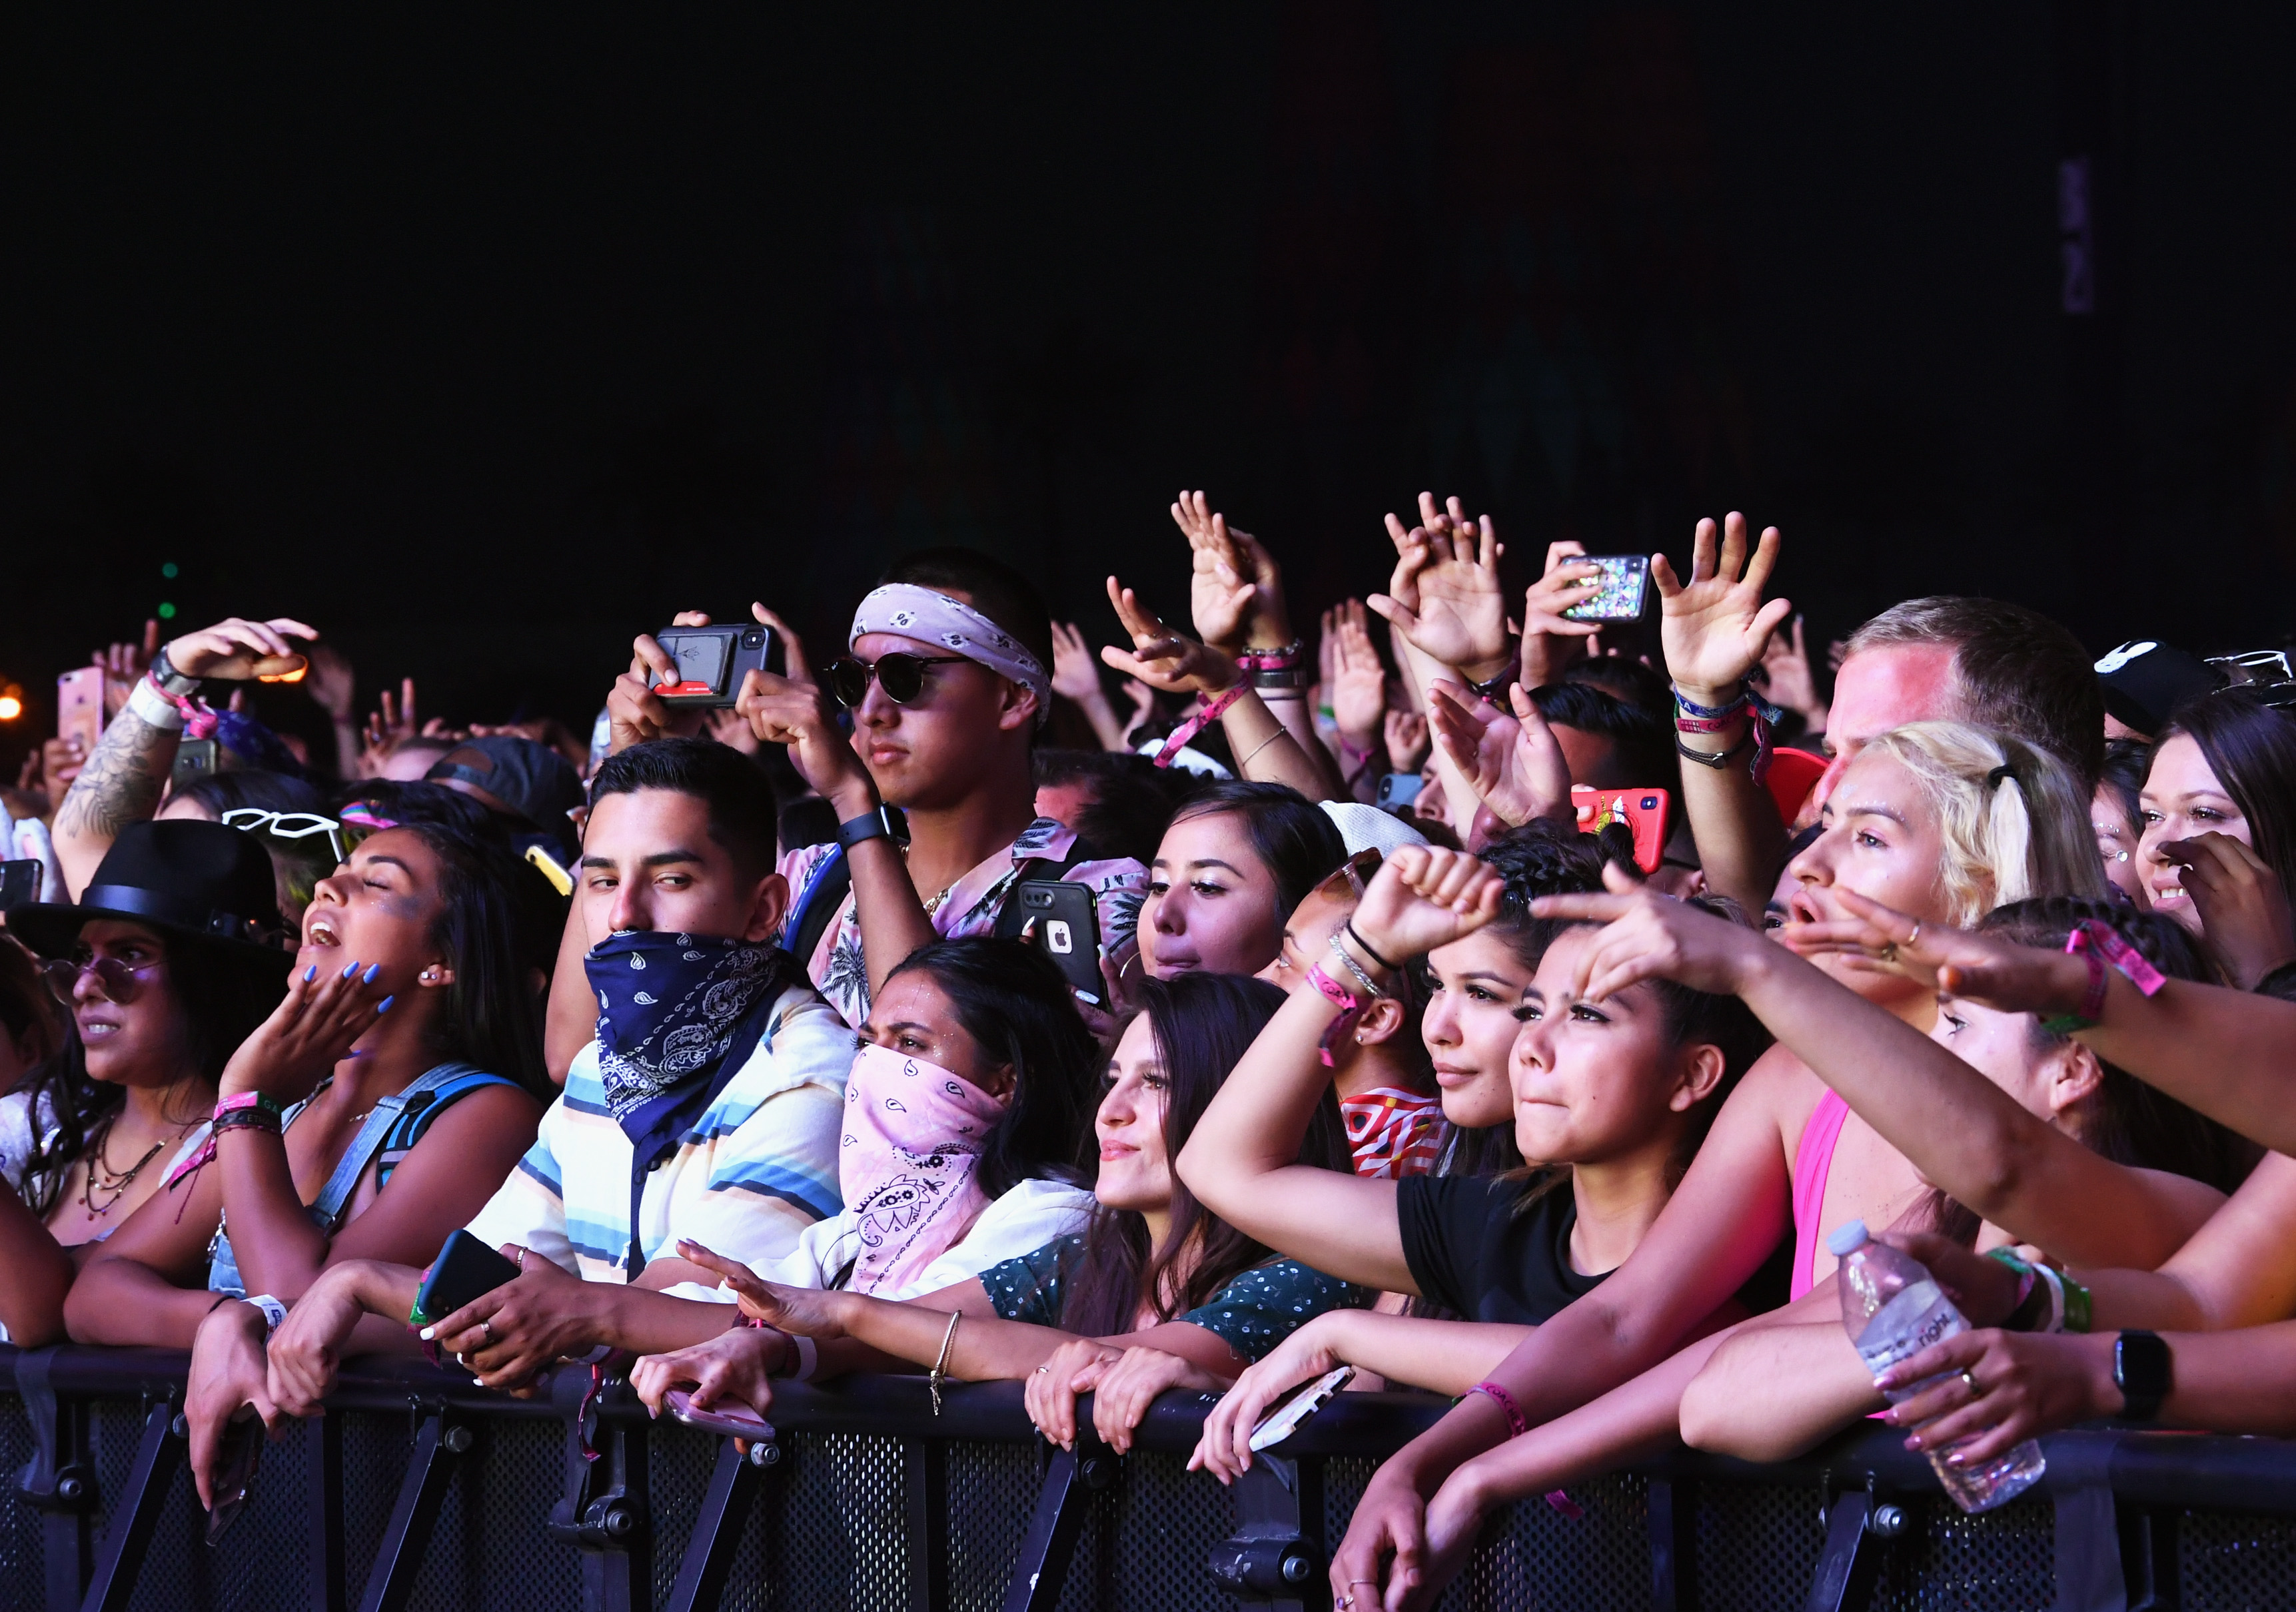 Can You Imagine a Year Without Concerts, Sporting Events or Film Festivals? California Might Have to